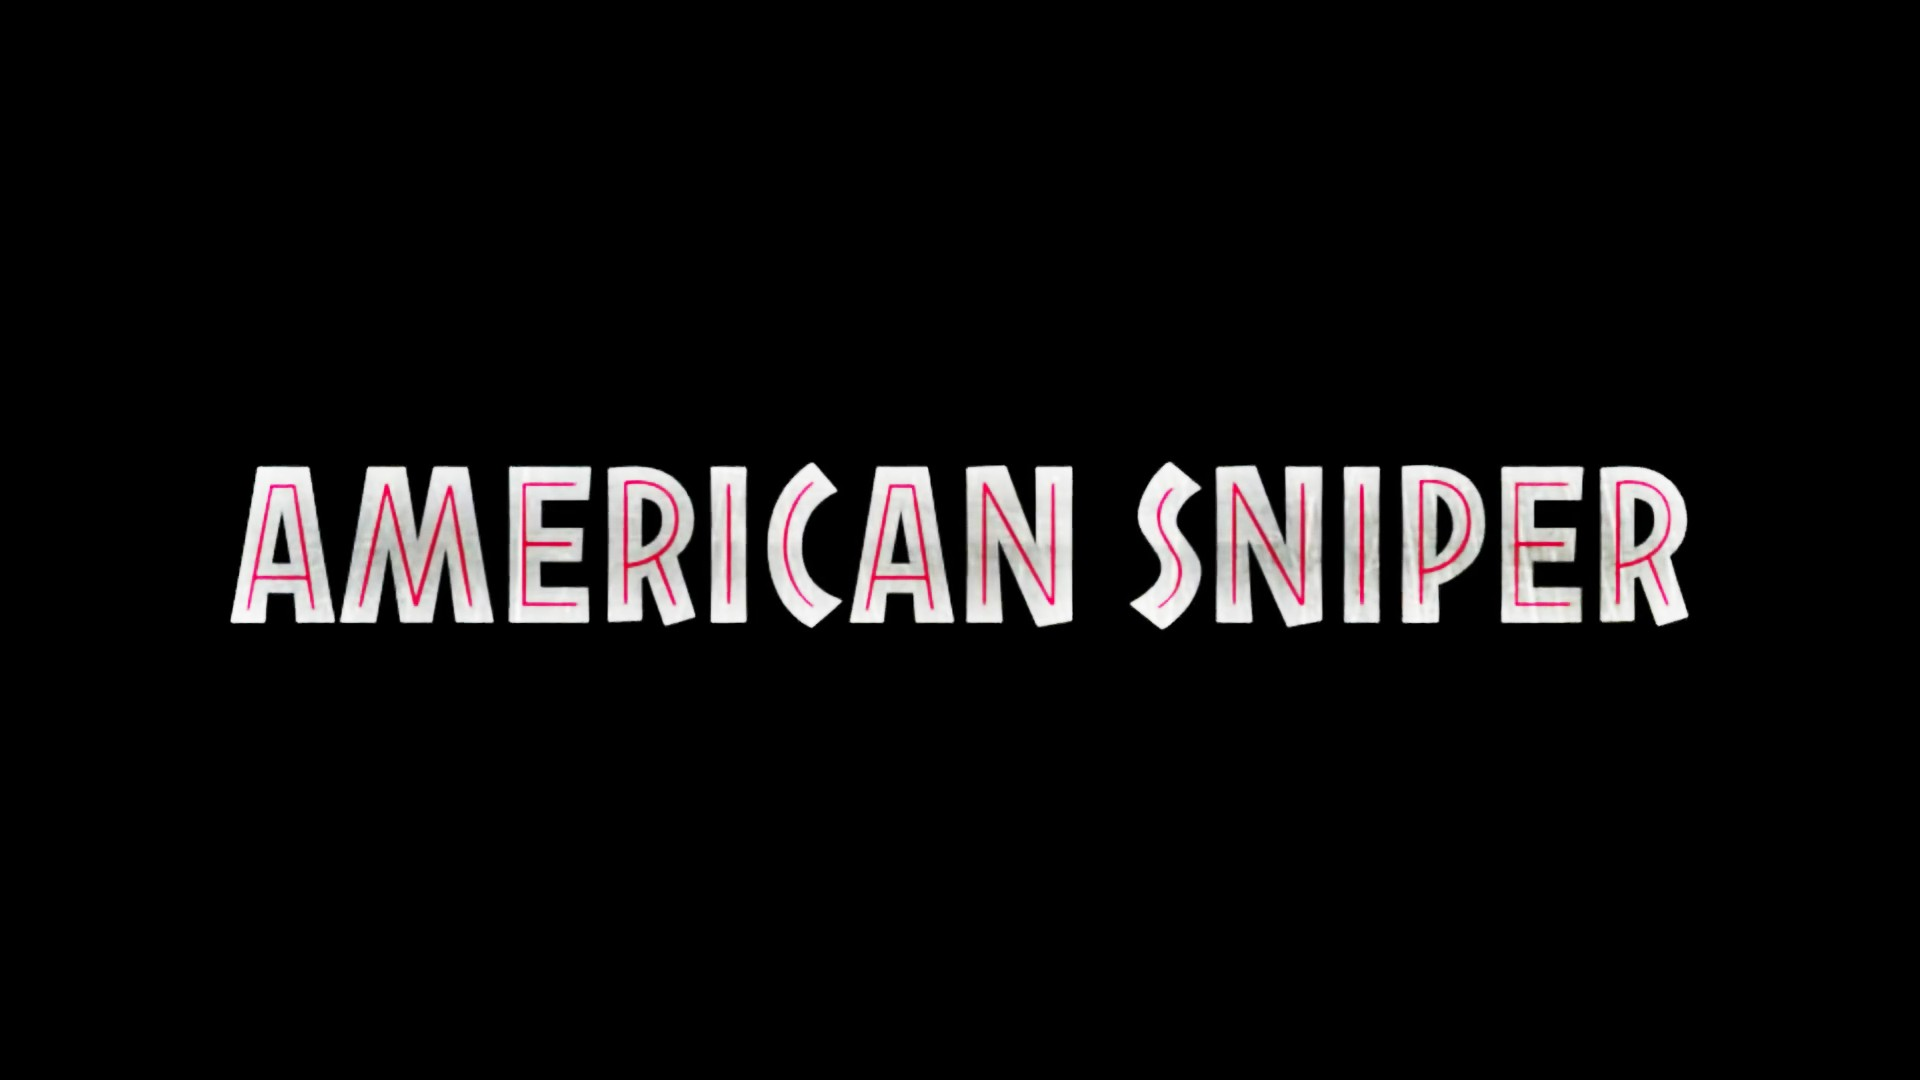 American Sniper Logo Hd Wallpaper 1920 1080 1920x1080